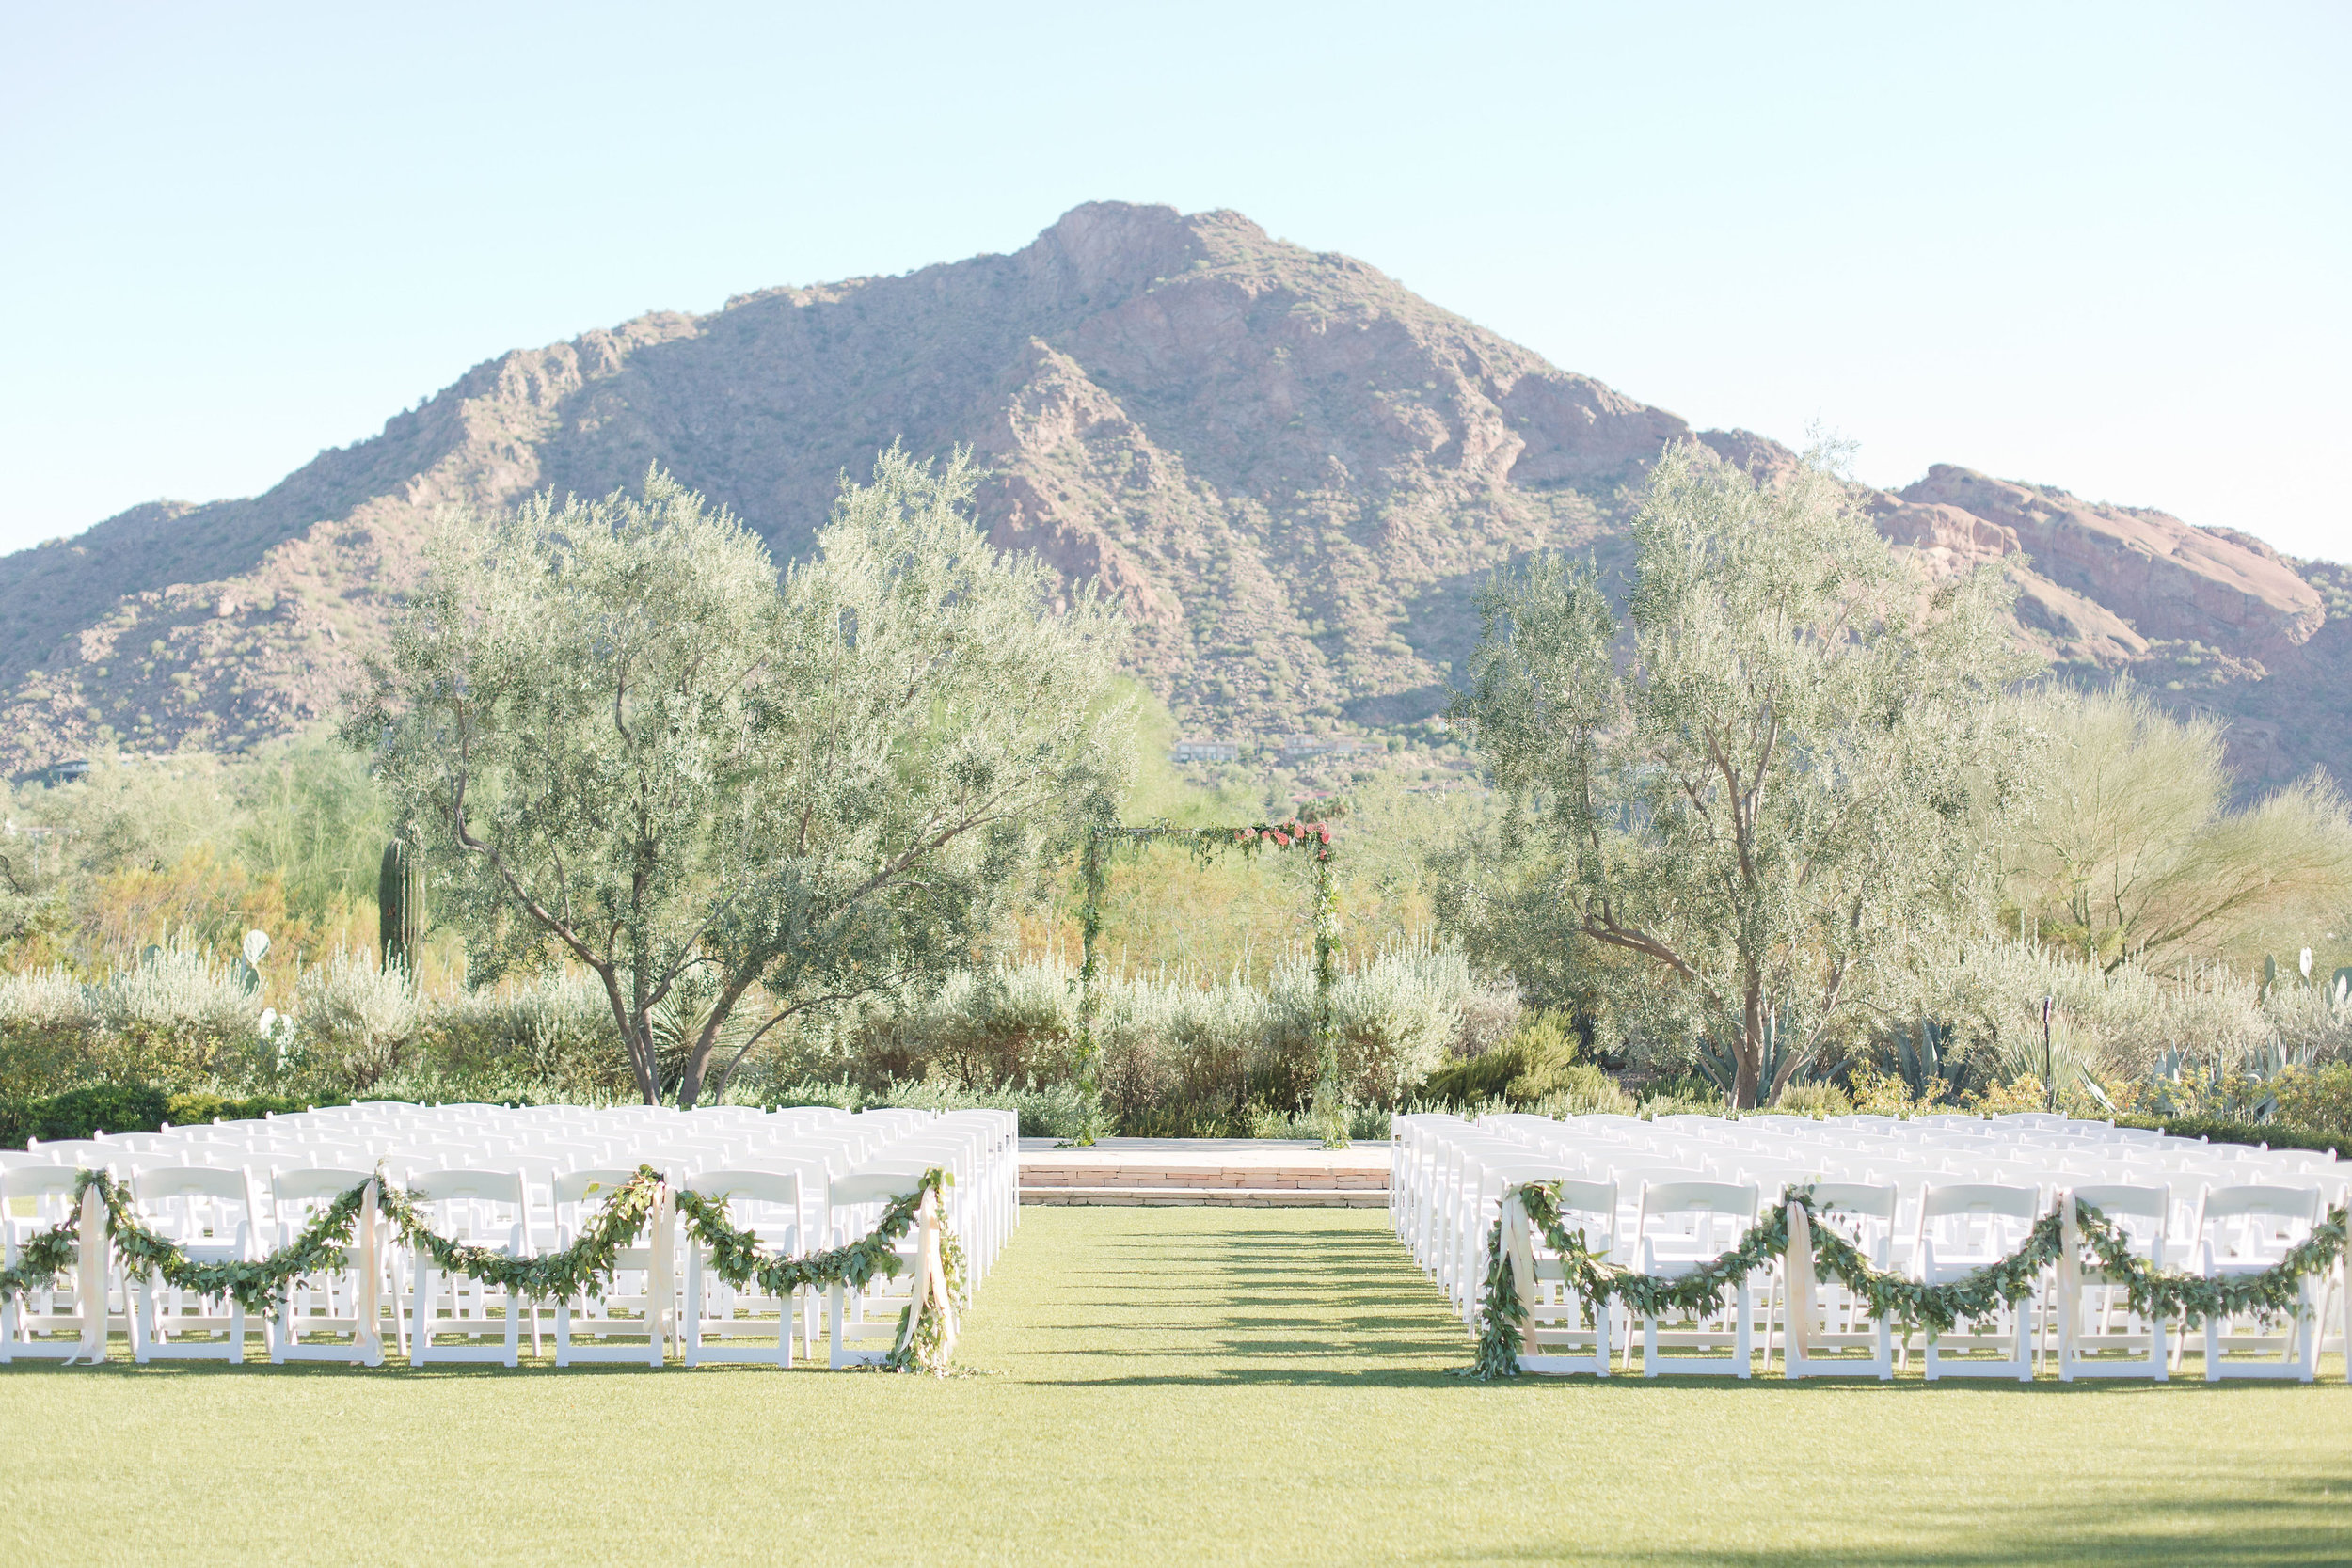 peach and mint wedding, blush and green wedding, Arizona Phoenix Scottsdale wedding planner, ceremony, greenery on alter, greenery on chair backs, peach blush wedding flowers, camelback mountain ceremony view, desert wedding